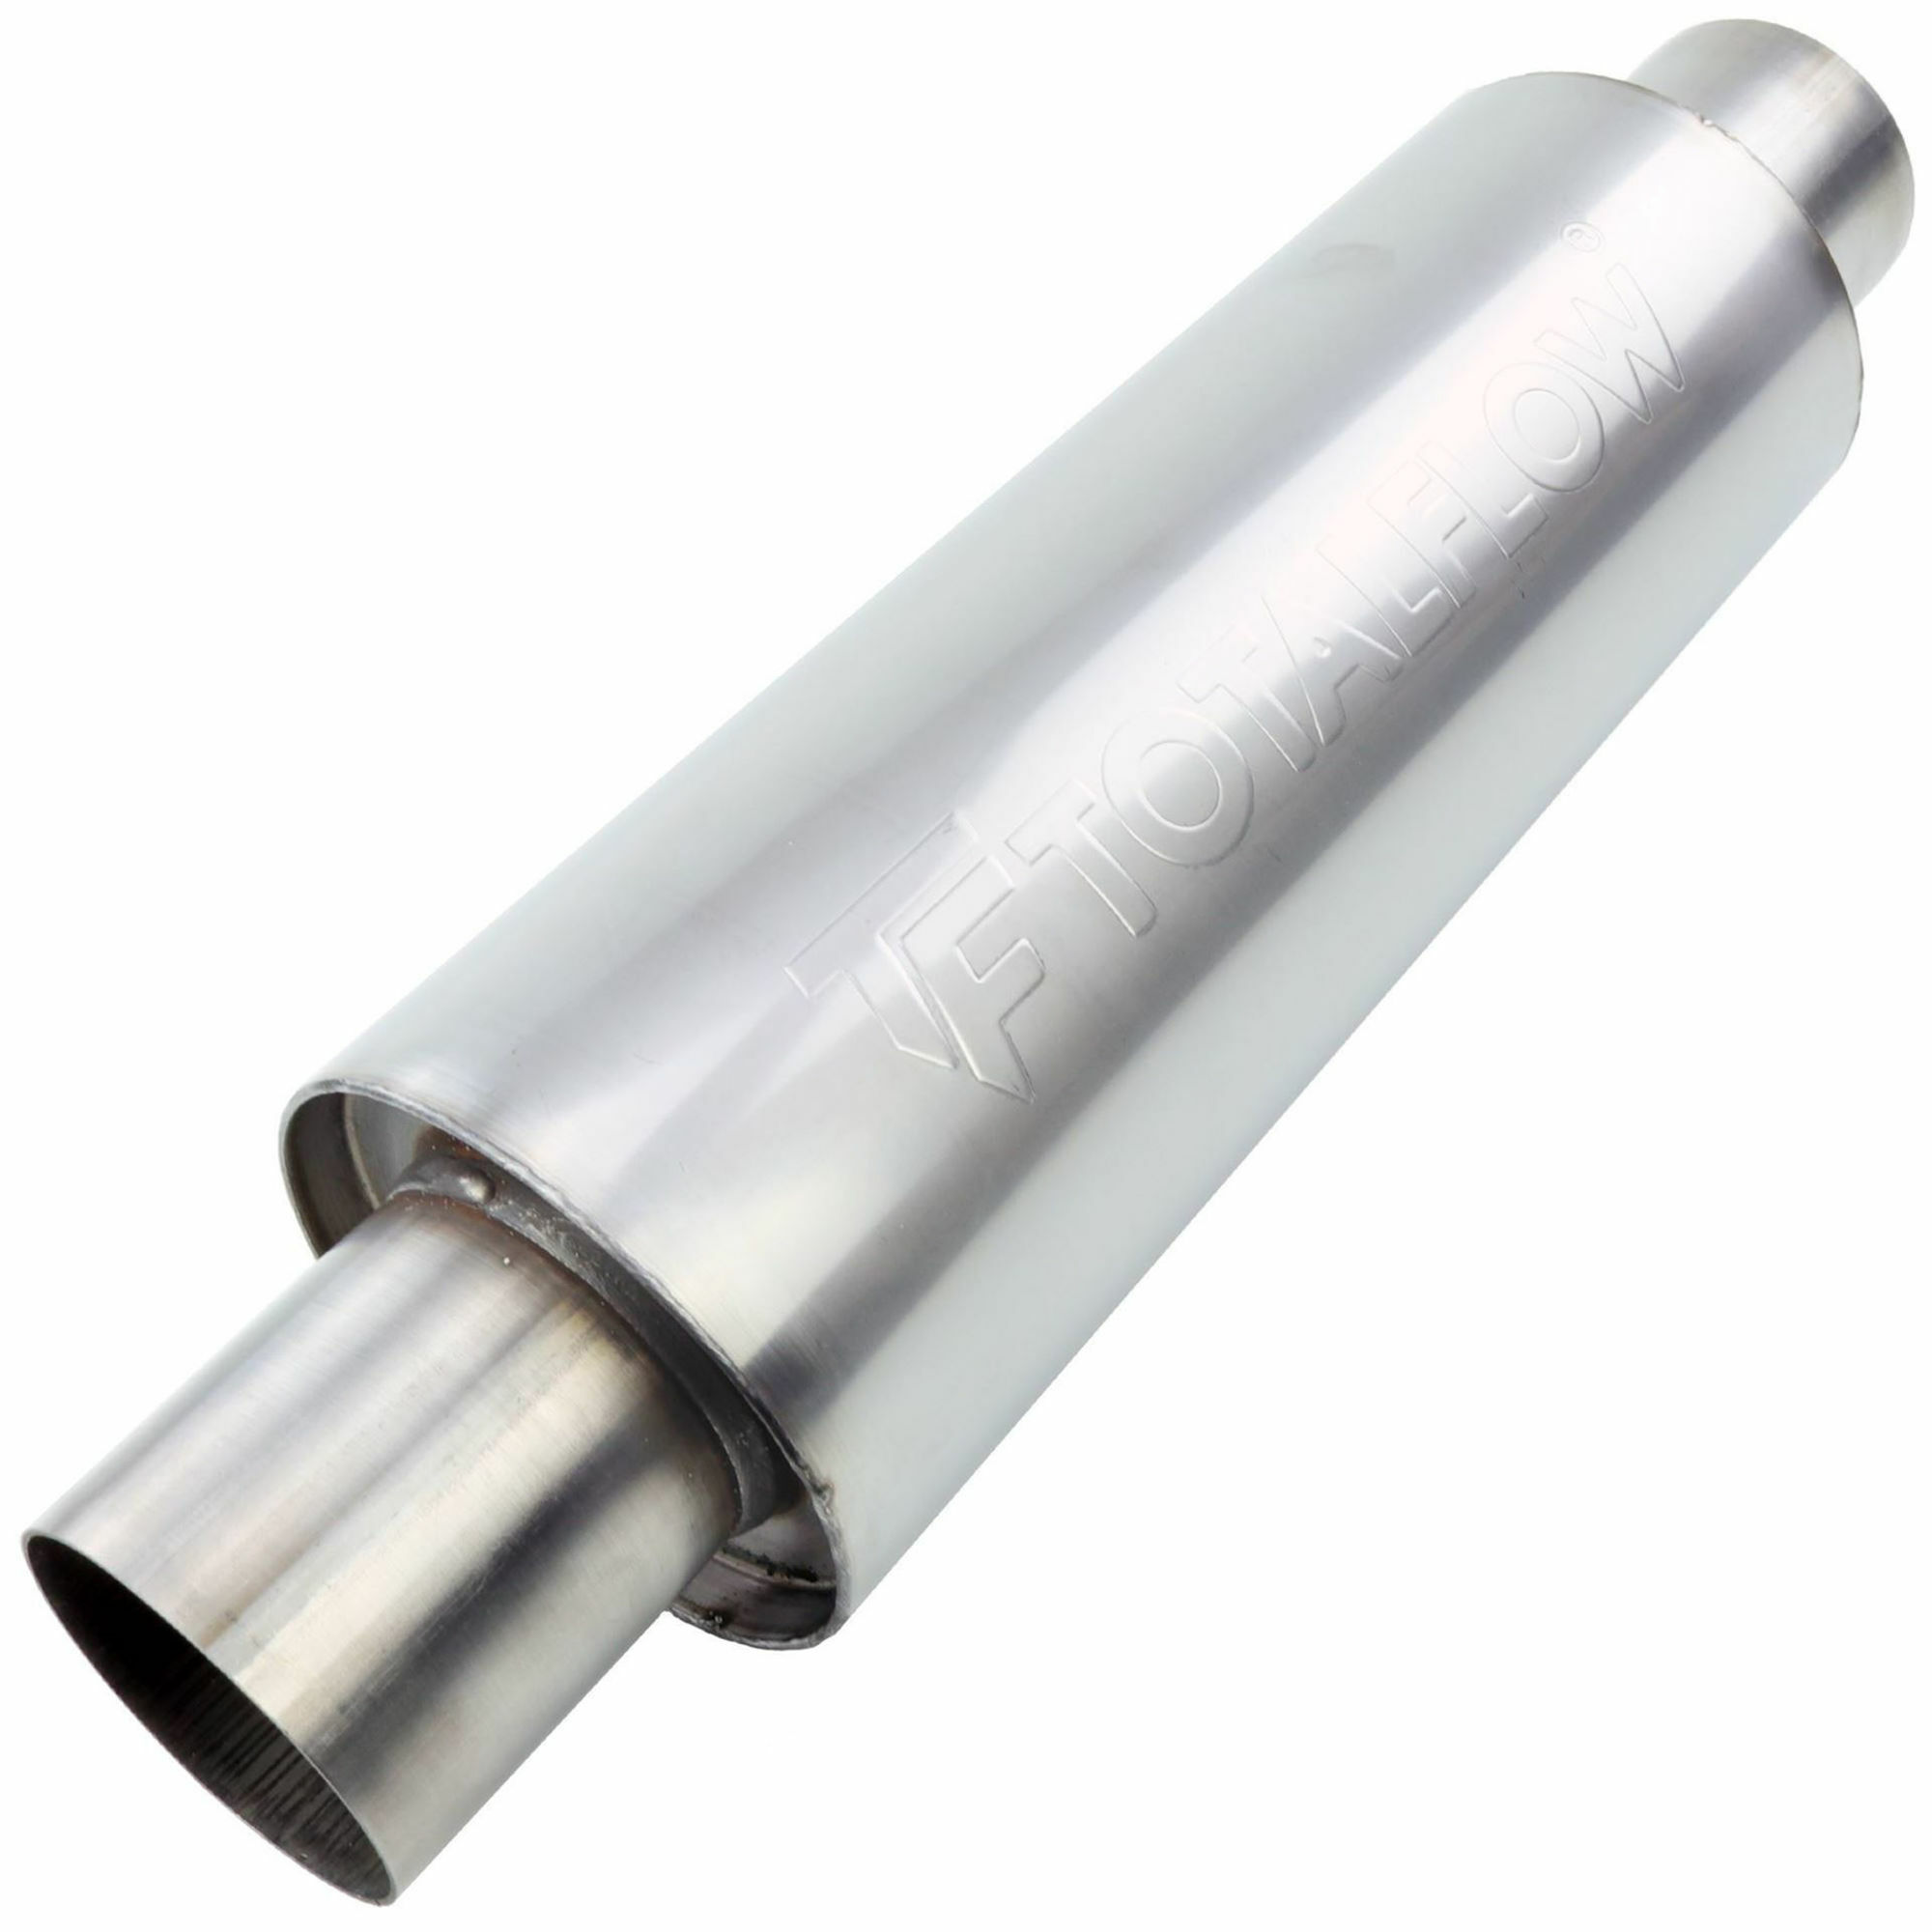 TOTALFLOW 22419 Straight Through Universal Exhaust Muffler - 3 Inch ID